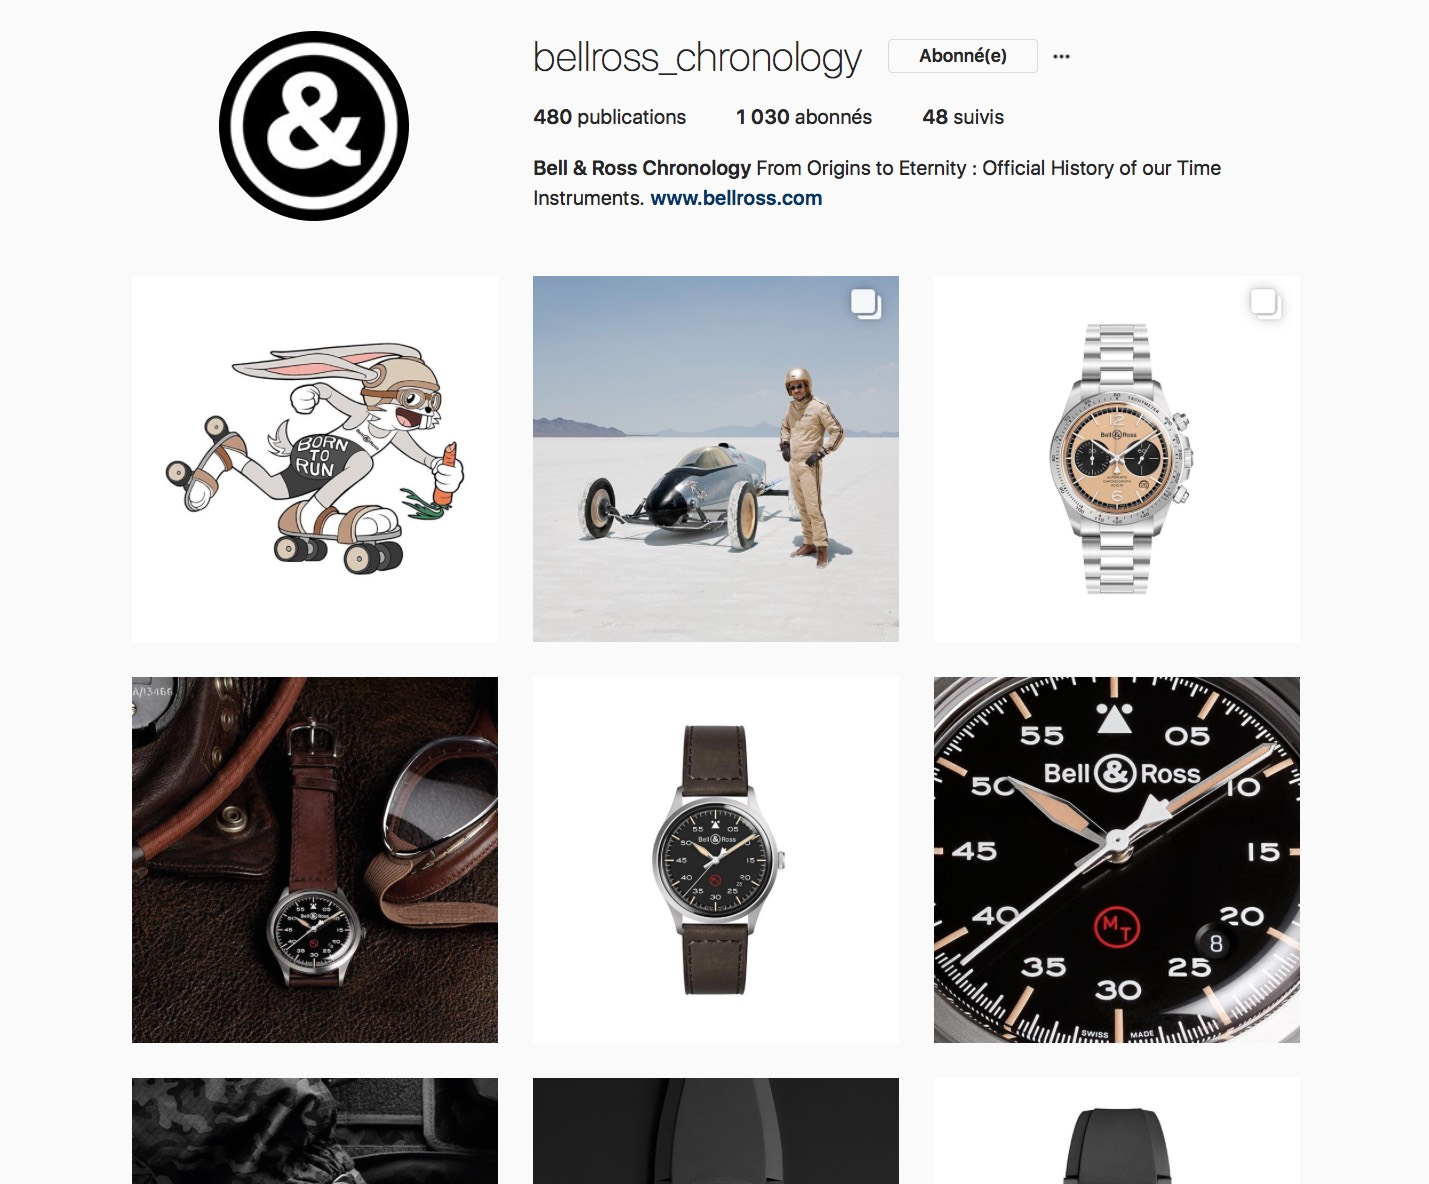 bellross_chronology Instagram